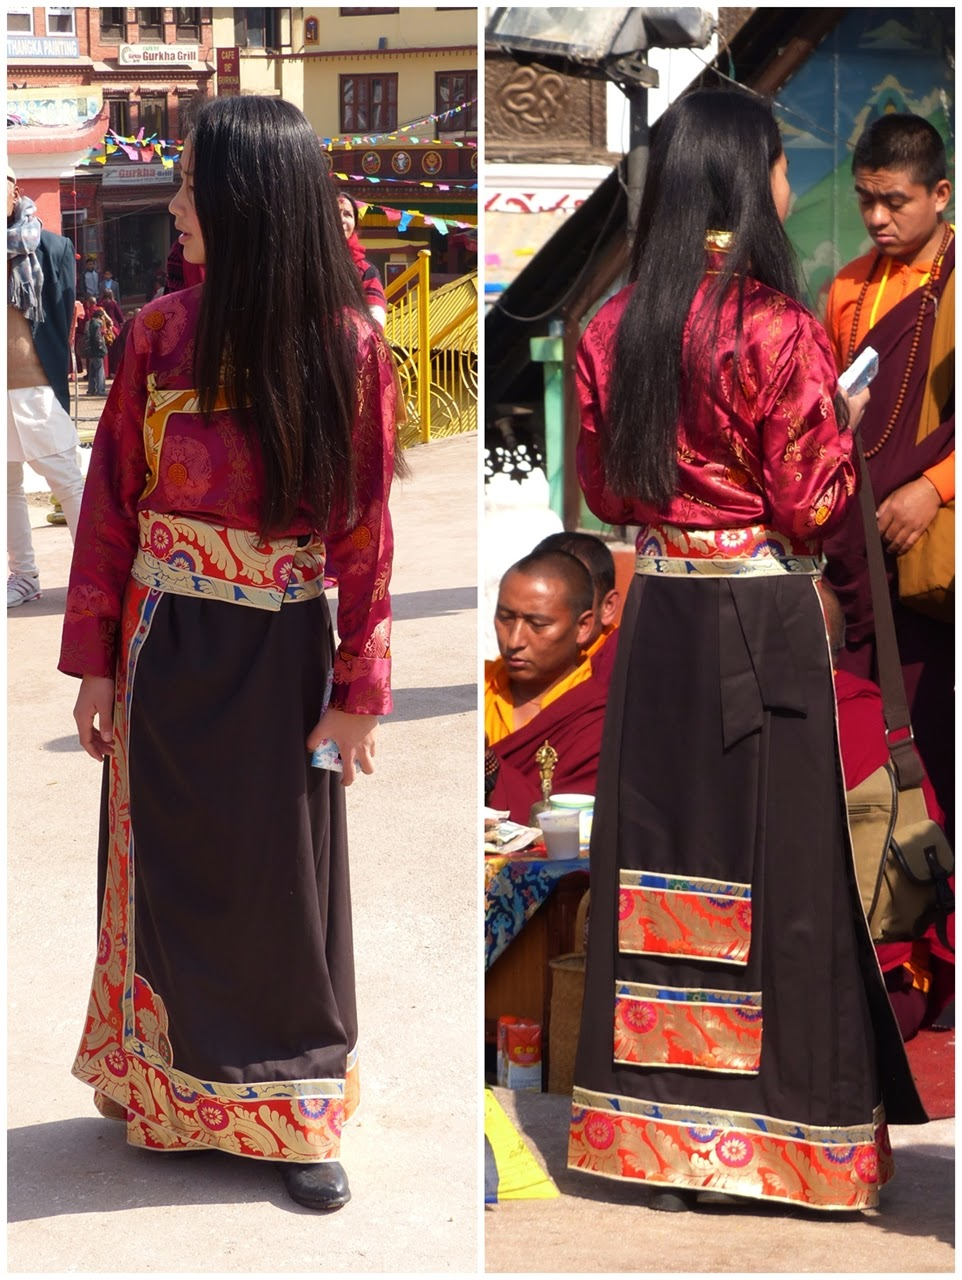 Traditional Tibetan dress, front and back view